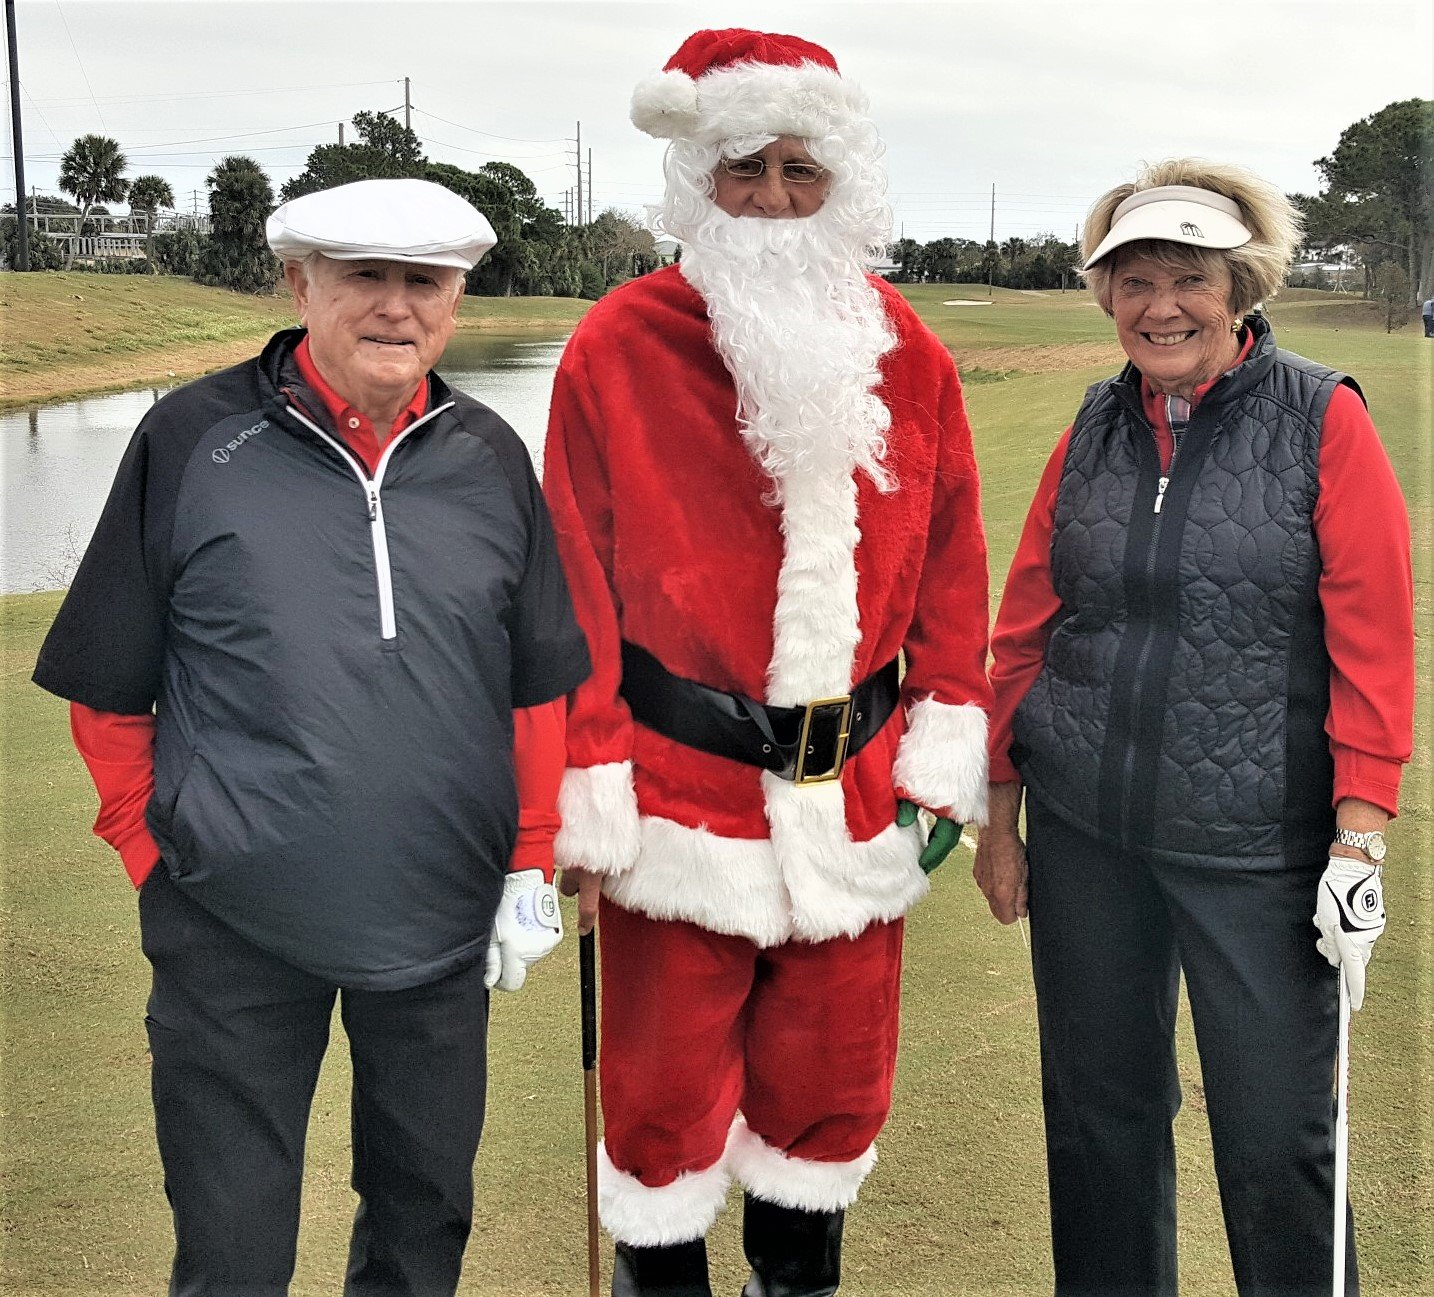 Former PGA TOUR commissioner Deane Beman and wife Judy pose with Santa at the tournament.